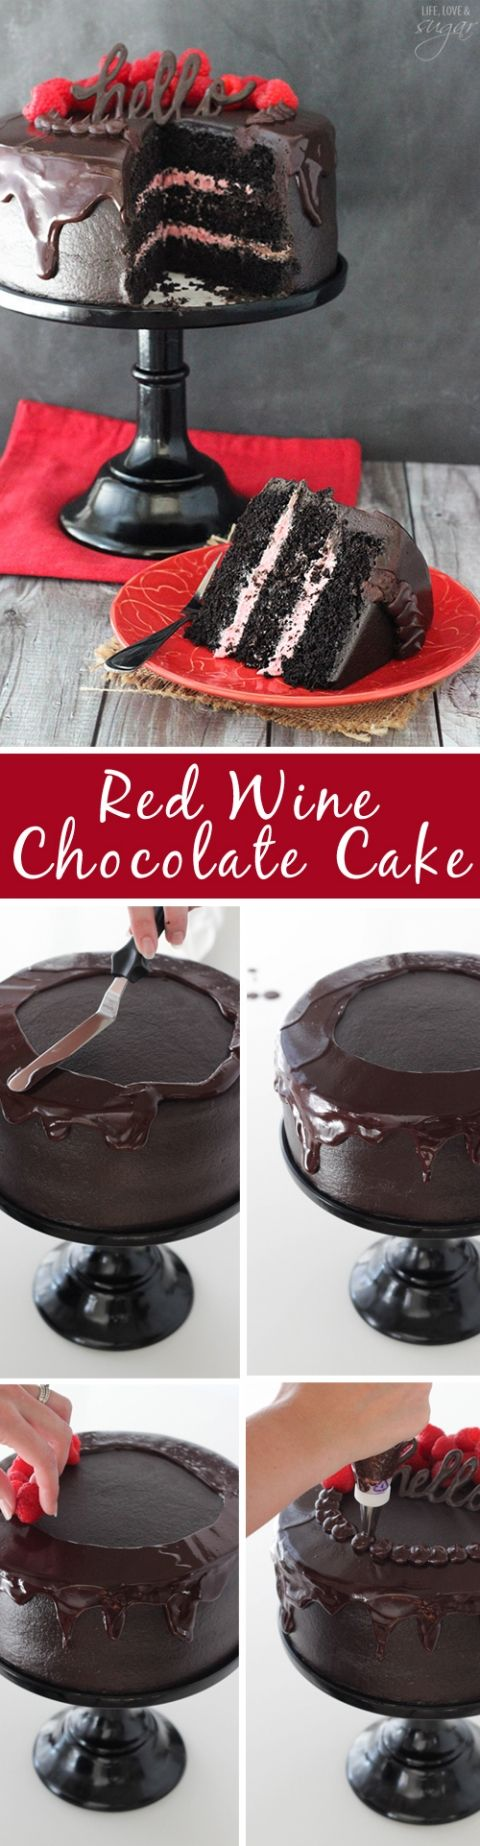 Red Wine Chocolate Cake - with red wine in the cake and chocolate ganache! The raspberry filling is the perfect compliment! Such a moist cake! LOVE!